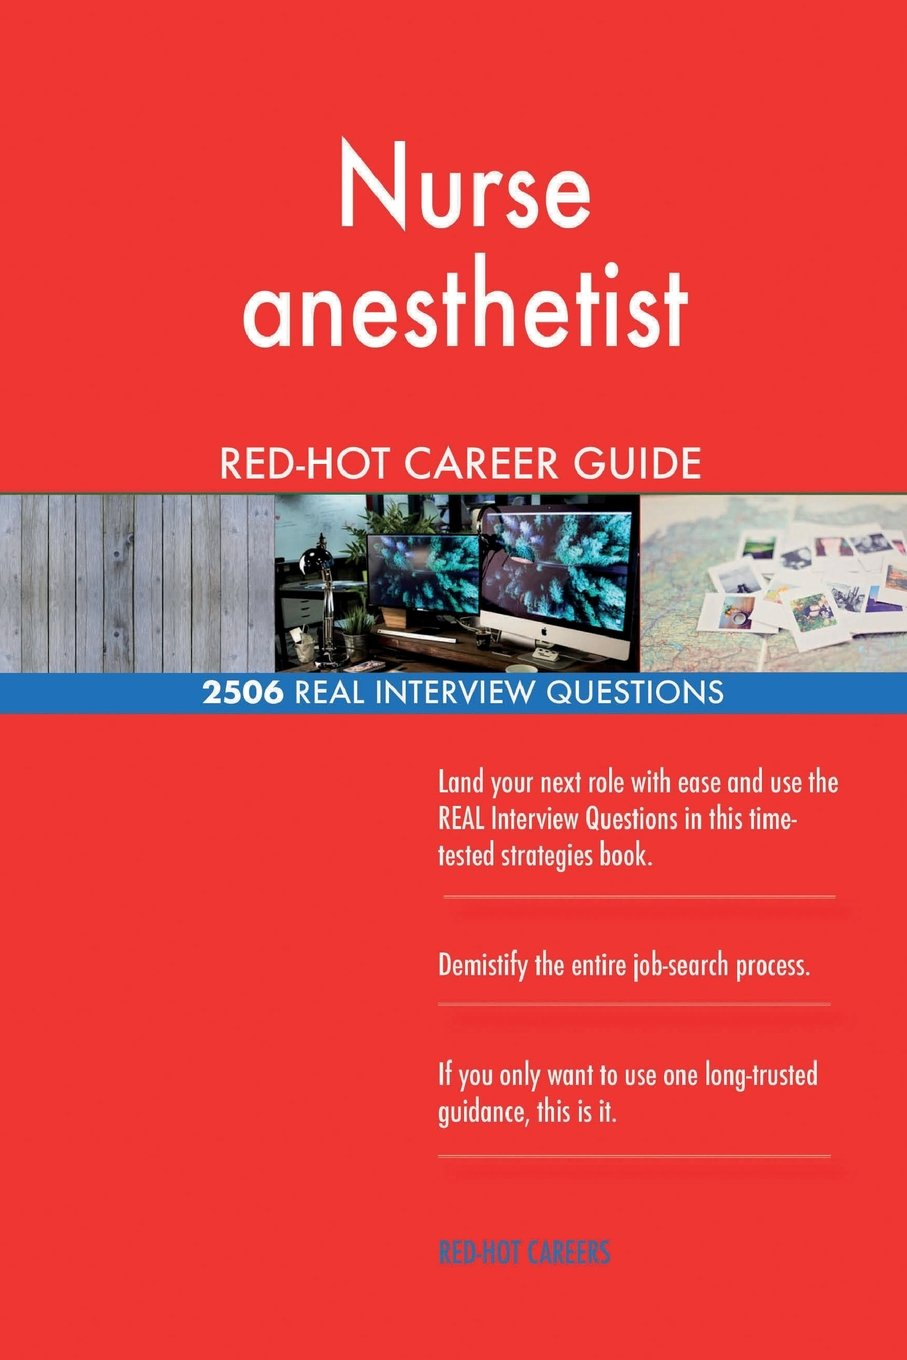 Nurse anesthetist RED-HOT Career Guide; 2506 REAL Interview Questions ebook